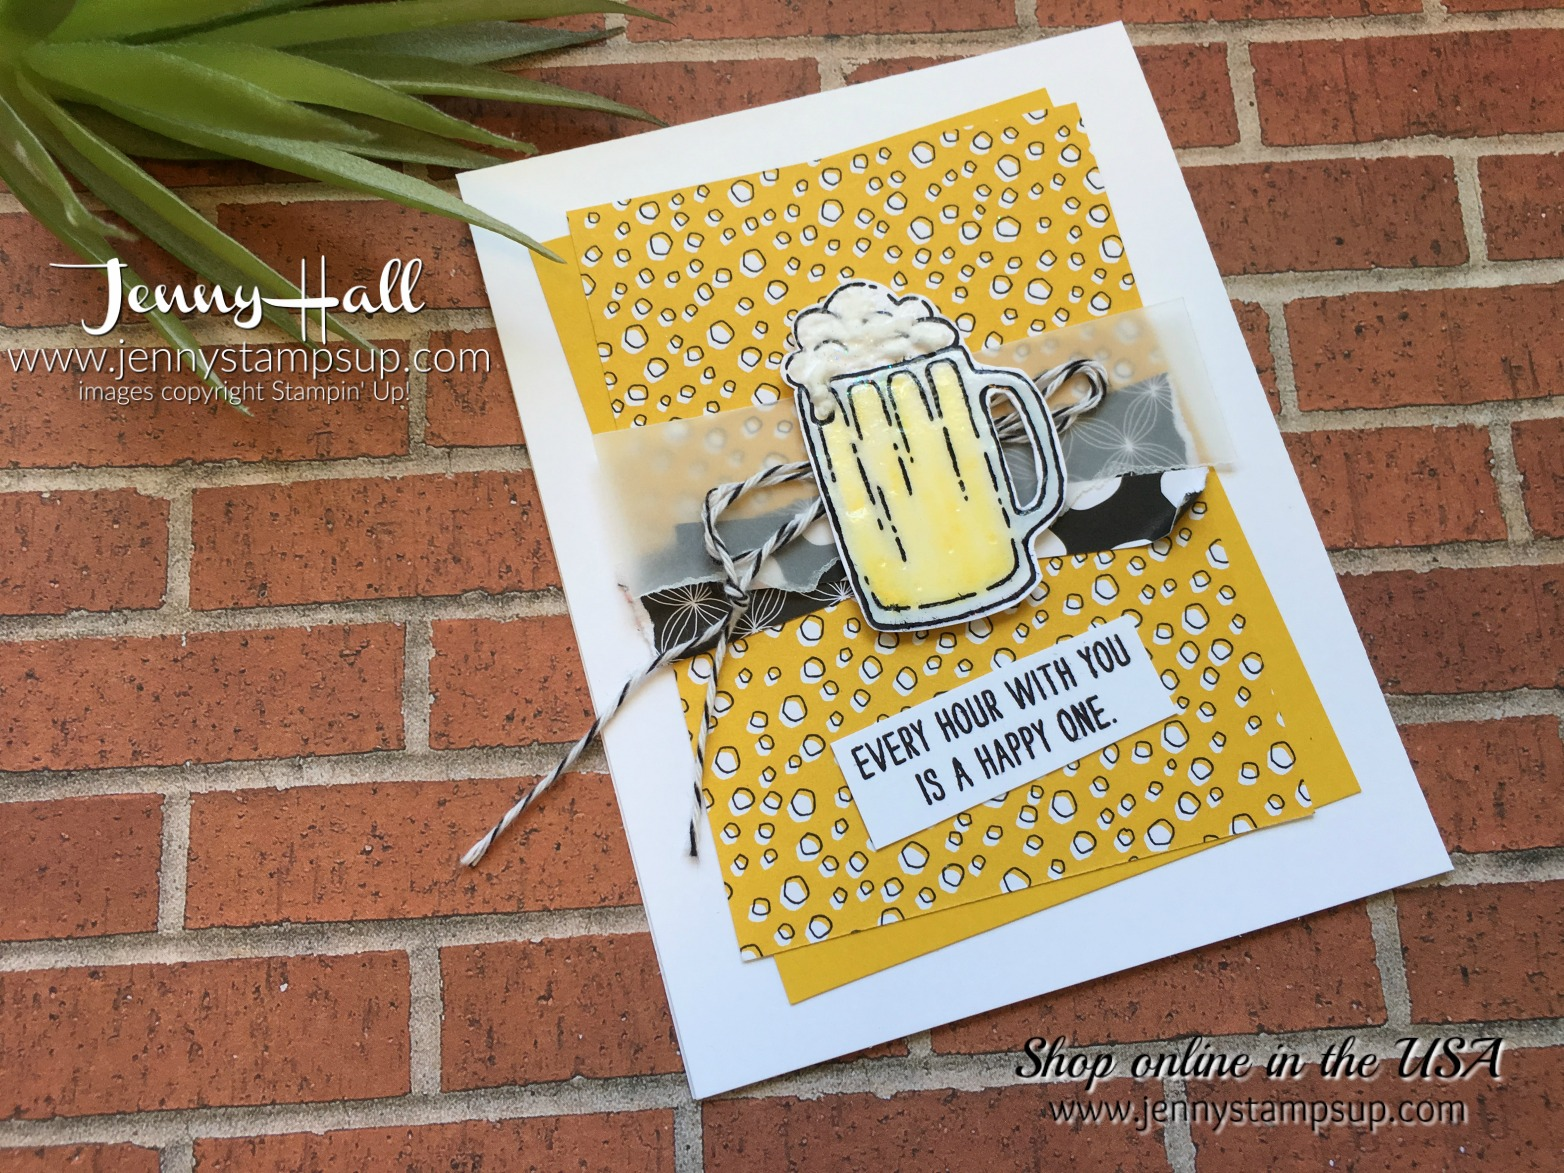 mixed drinks stamp set by Jenny Hall at www.jennyhalldesign.com